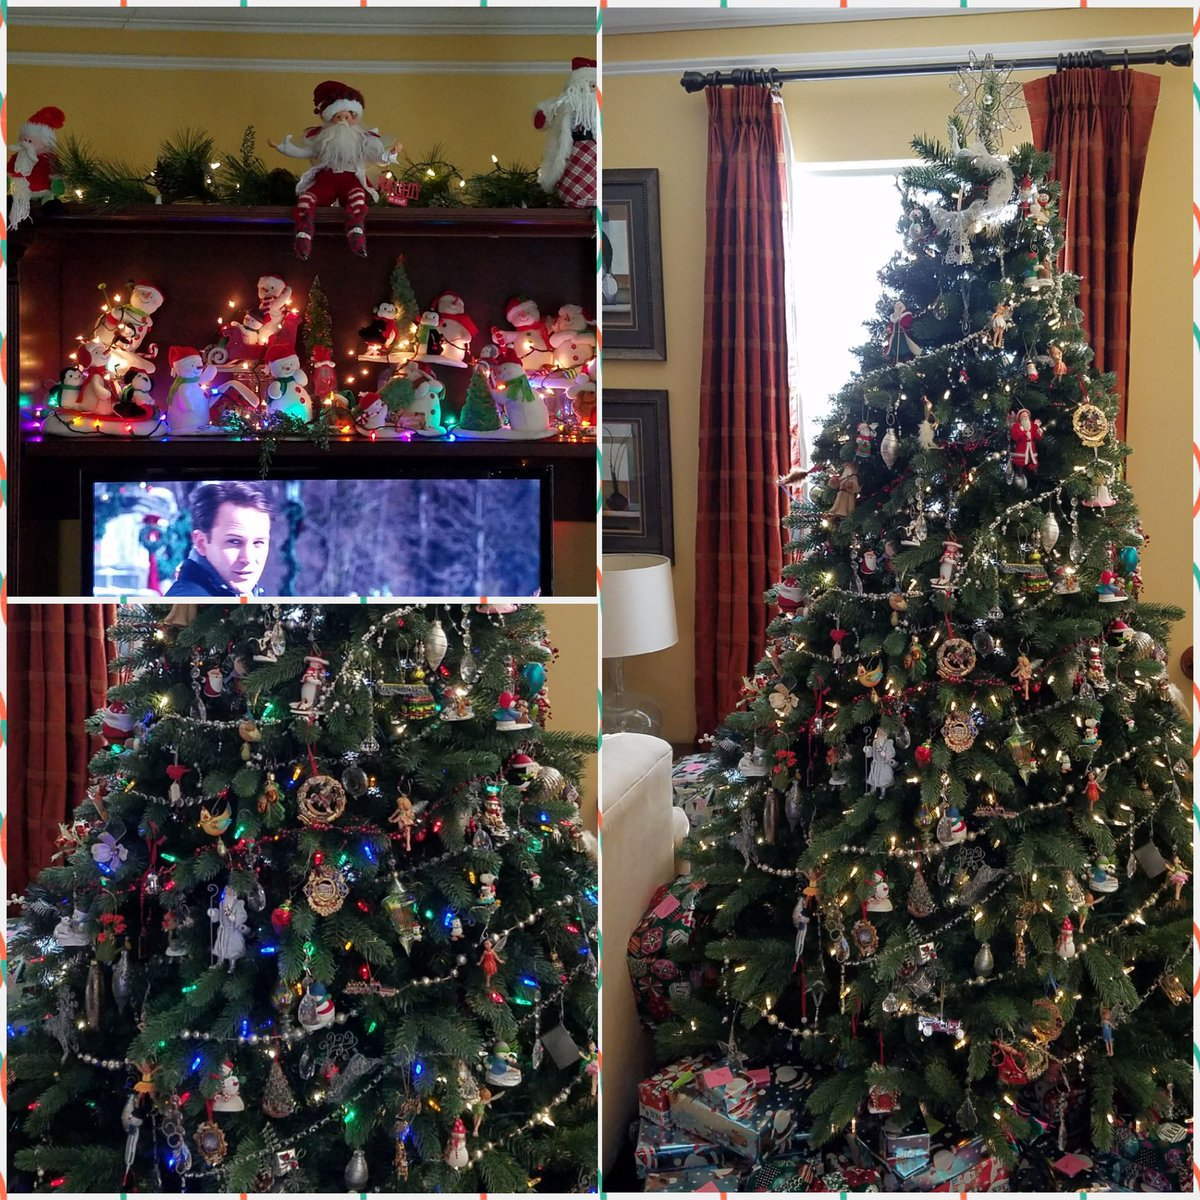 monika jassal on twitter decorations up presents wrapped a sweet christmas movie playing drooling over the lead actor